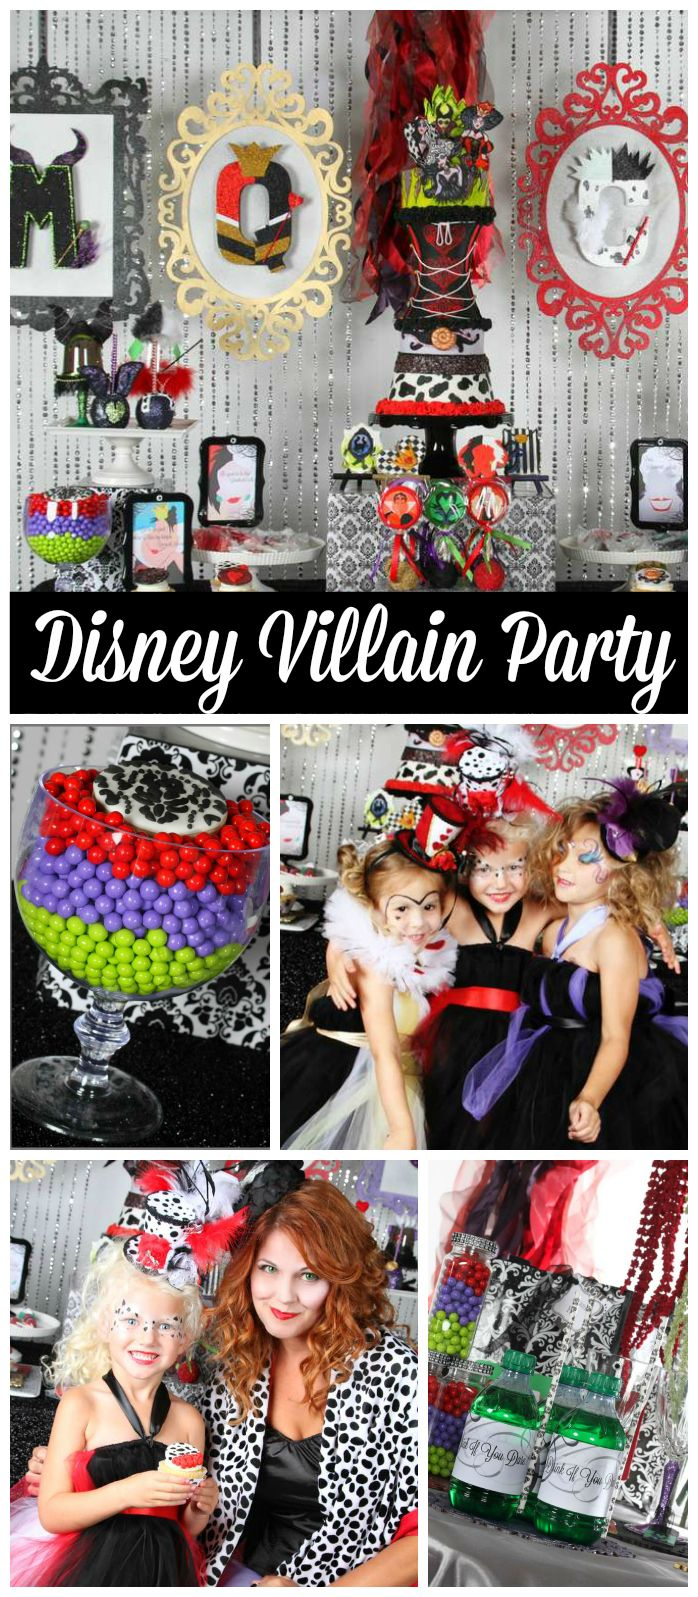 A glamorous Disney villain Mommy and Me party with dress up and a fantastic dessert table!  See more party planning ideas at CatchMyParty.com!